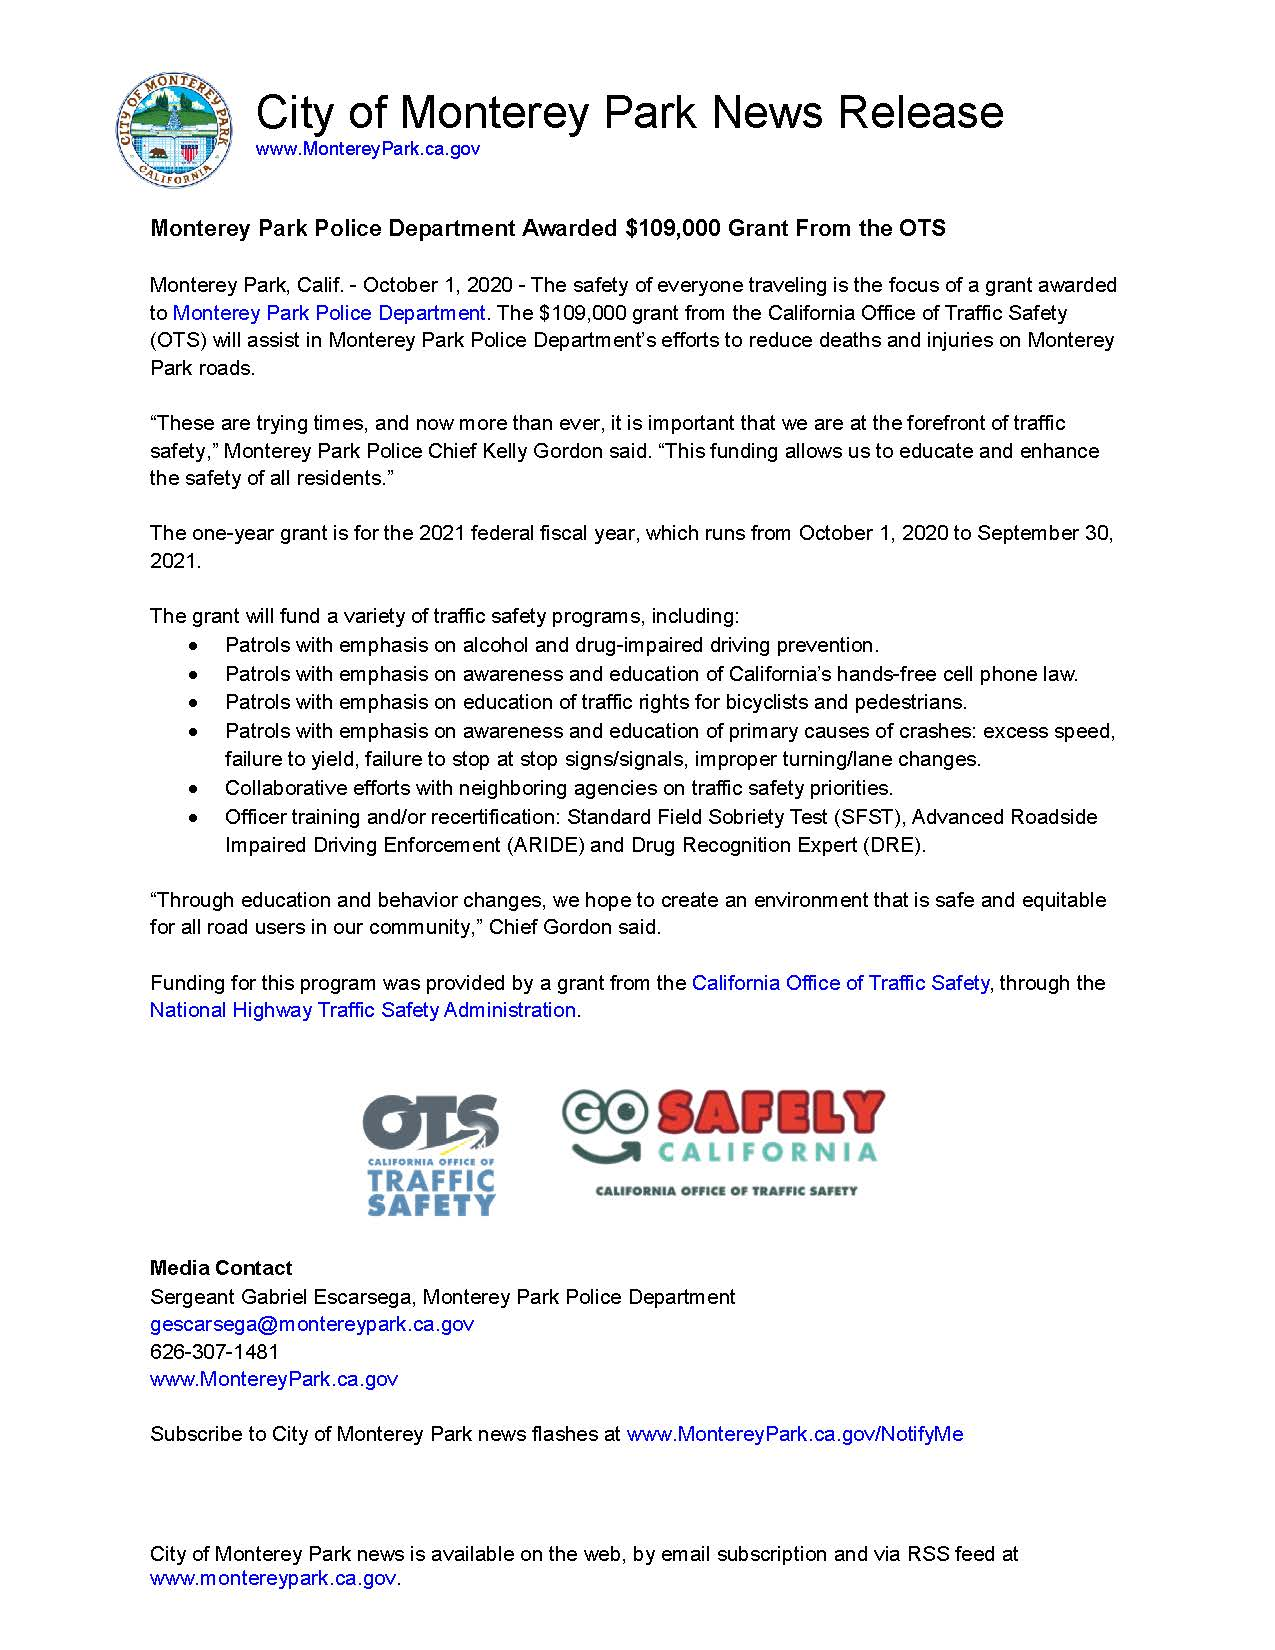 MPK News Release-Monterey Park Police Department Awarded Grant From the OTS